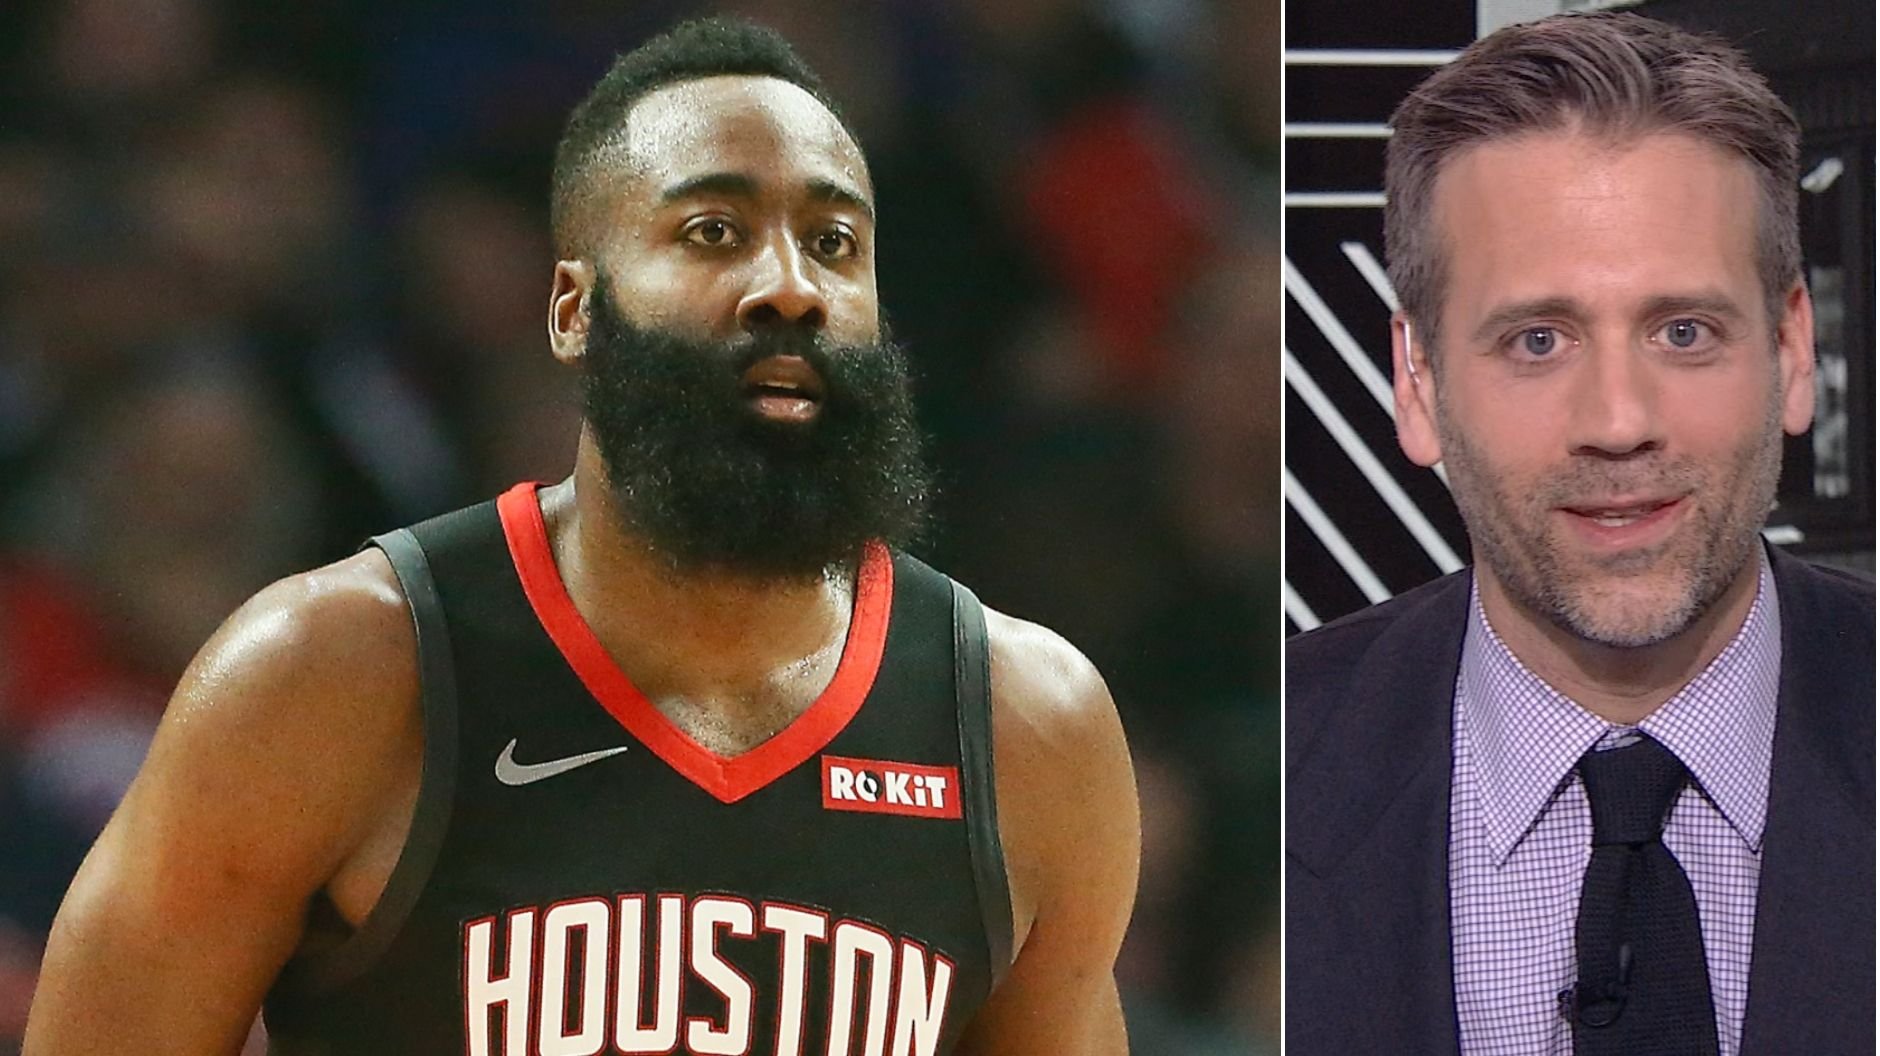 Kellerman: Rockets will beat the Warriors if Harden hits shots